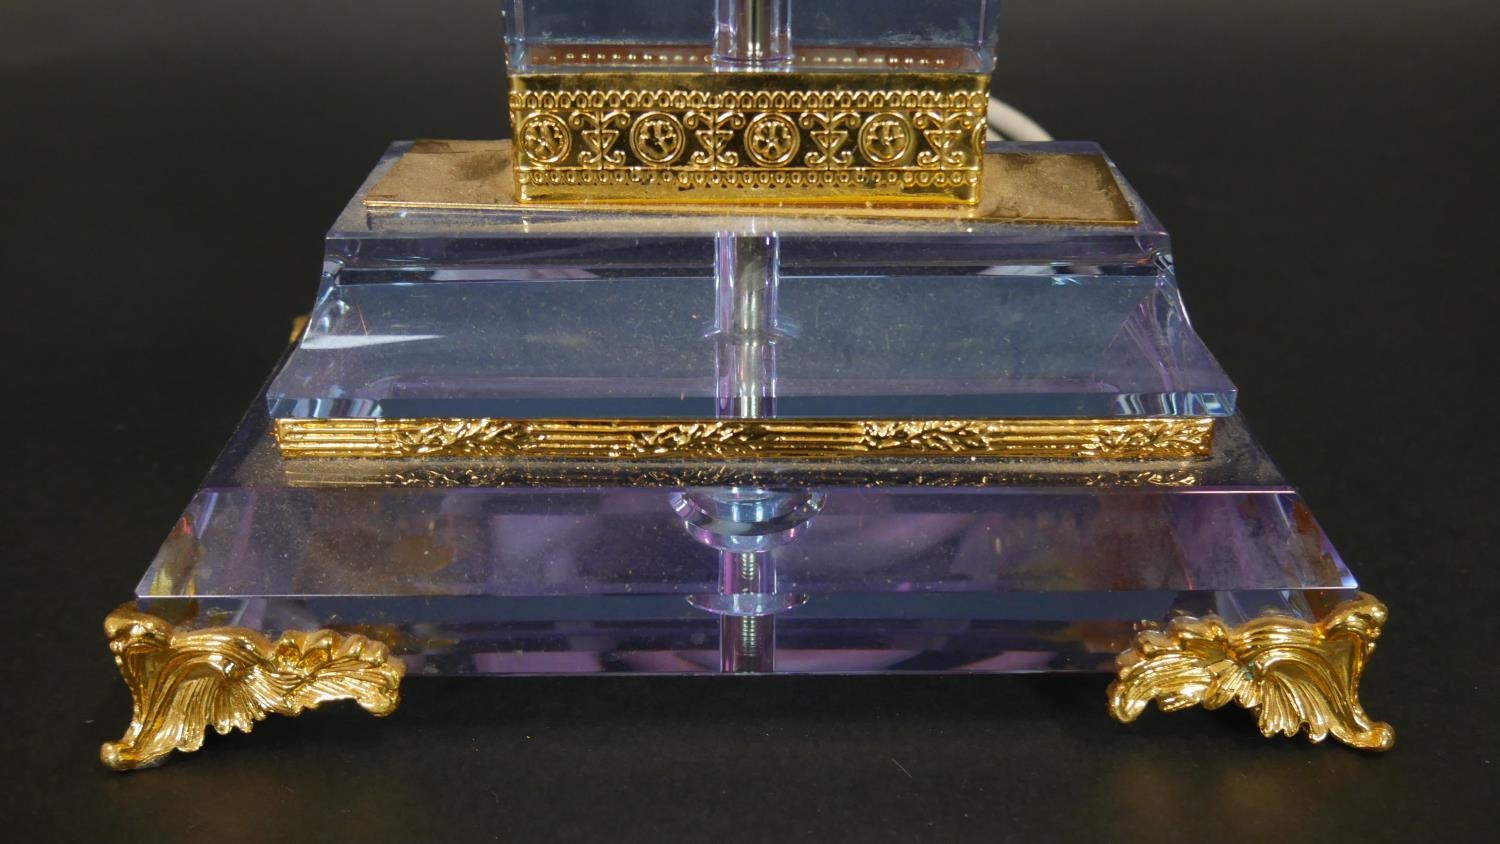 A Neoclassical style glass table lamp with gilt metal mounts resting on scrolling supports. H.49.5cm - Image 2 of 5